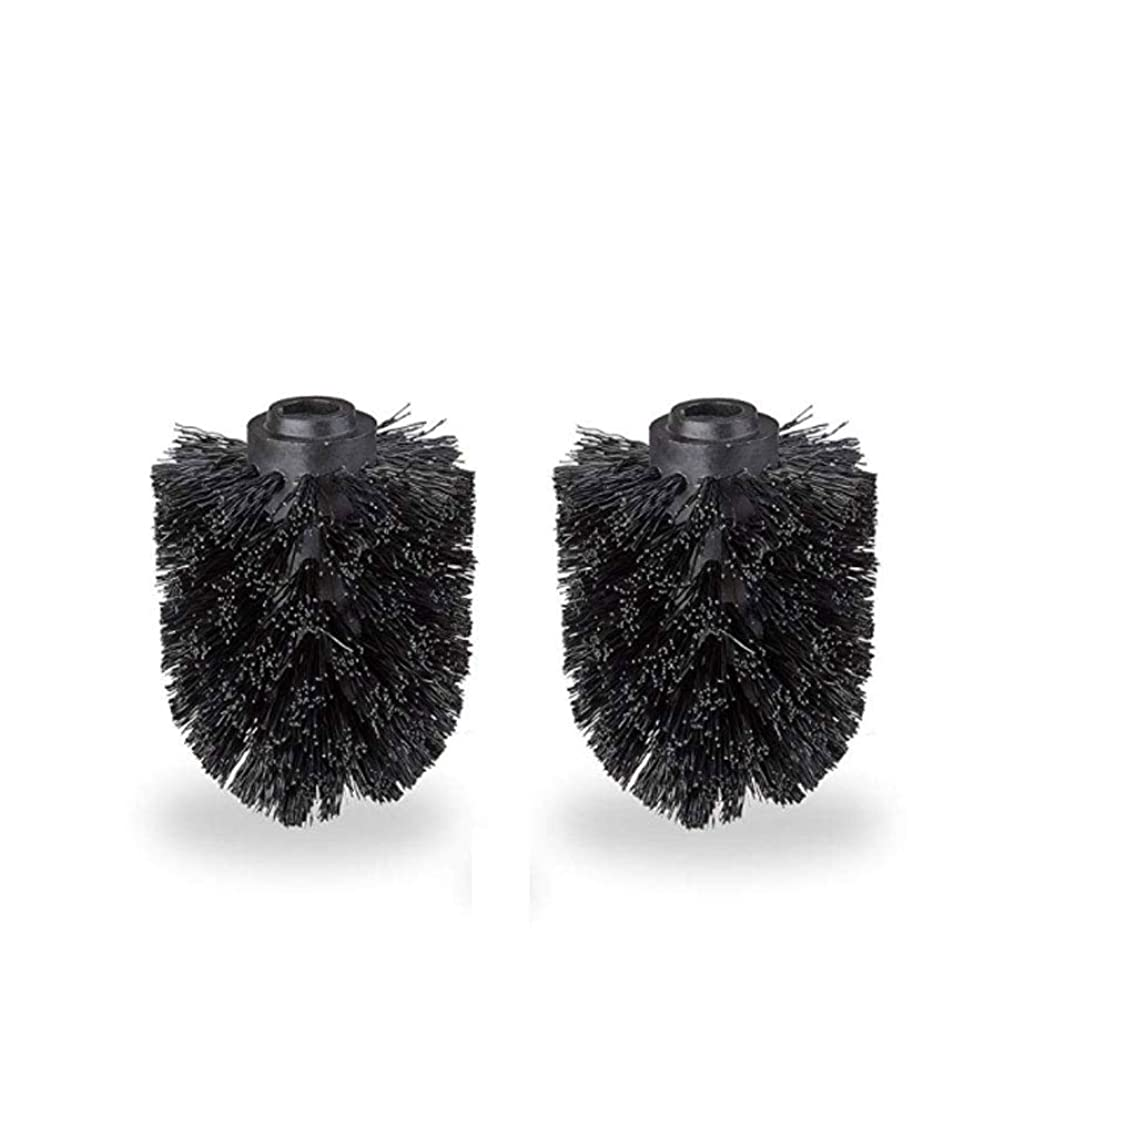 Toilet Brush Head Set 2 Loose Brush 12mm Thread Brush Head Diameter 7 cm Black